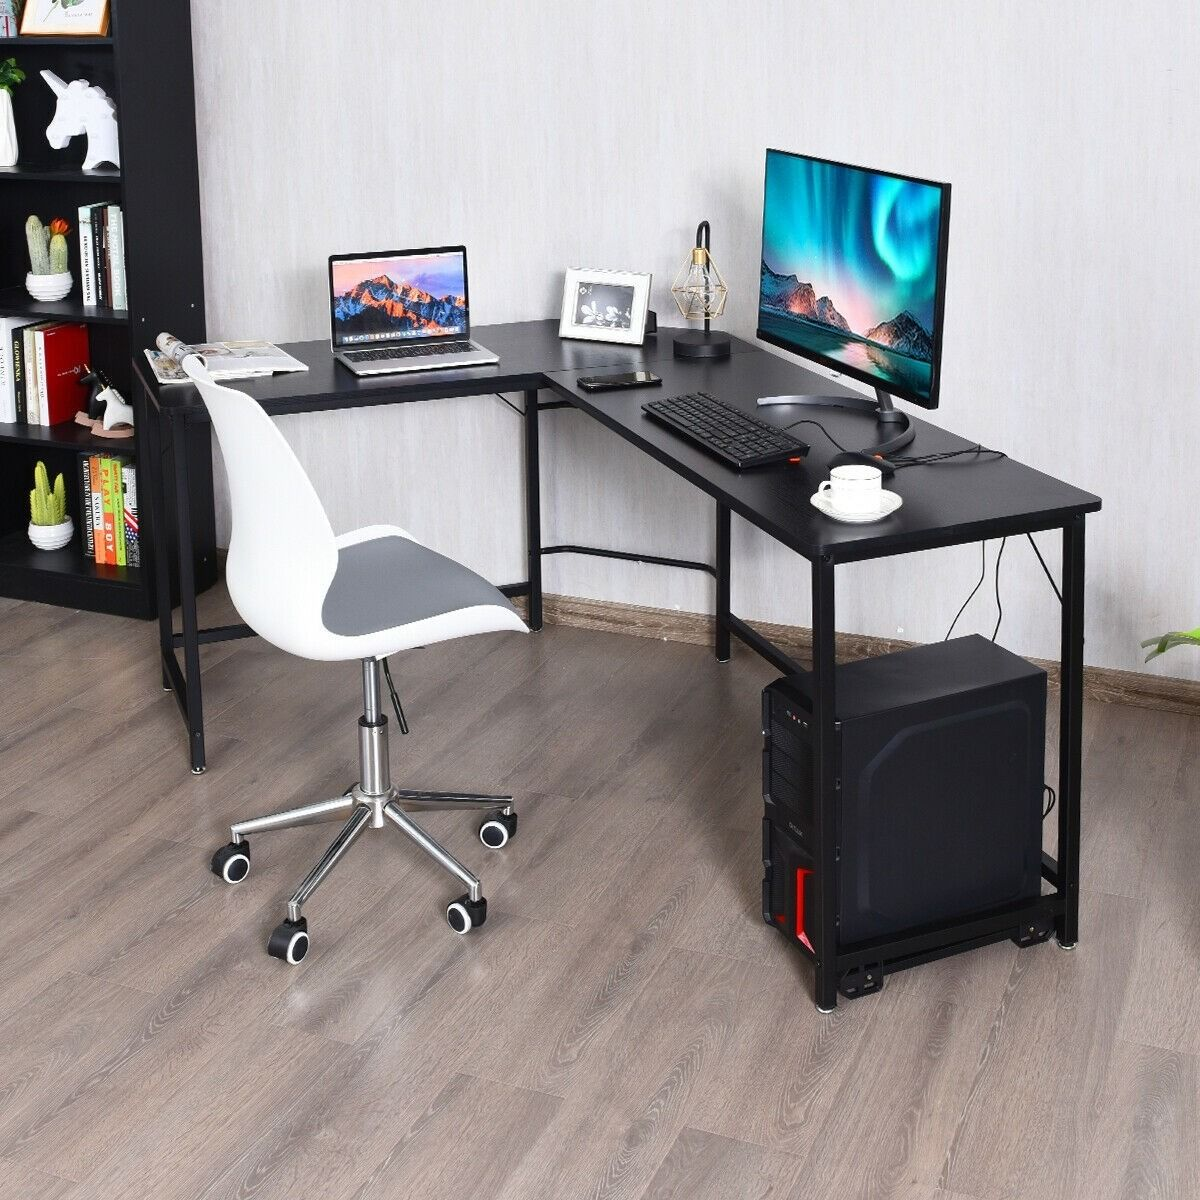 L Shaped Corner Computer Desk Laptop Gaming Table Workstation